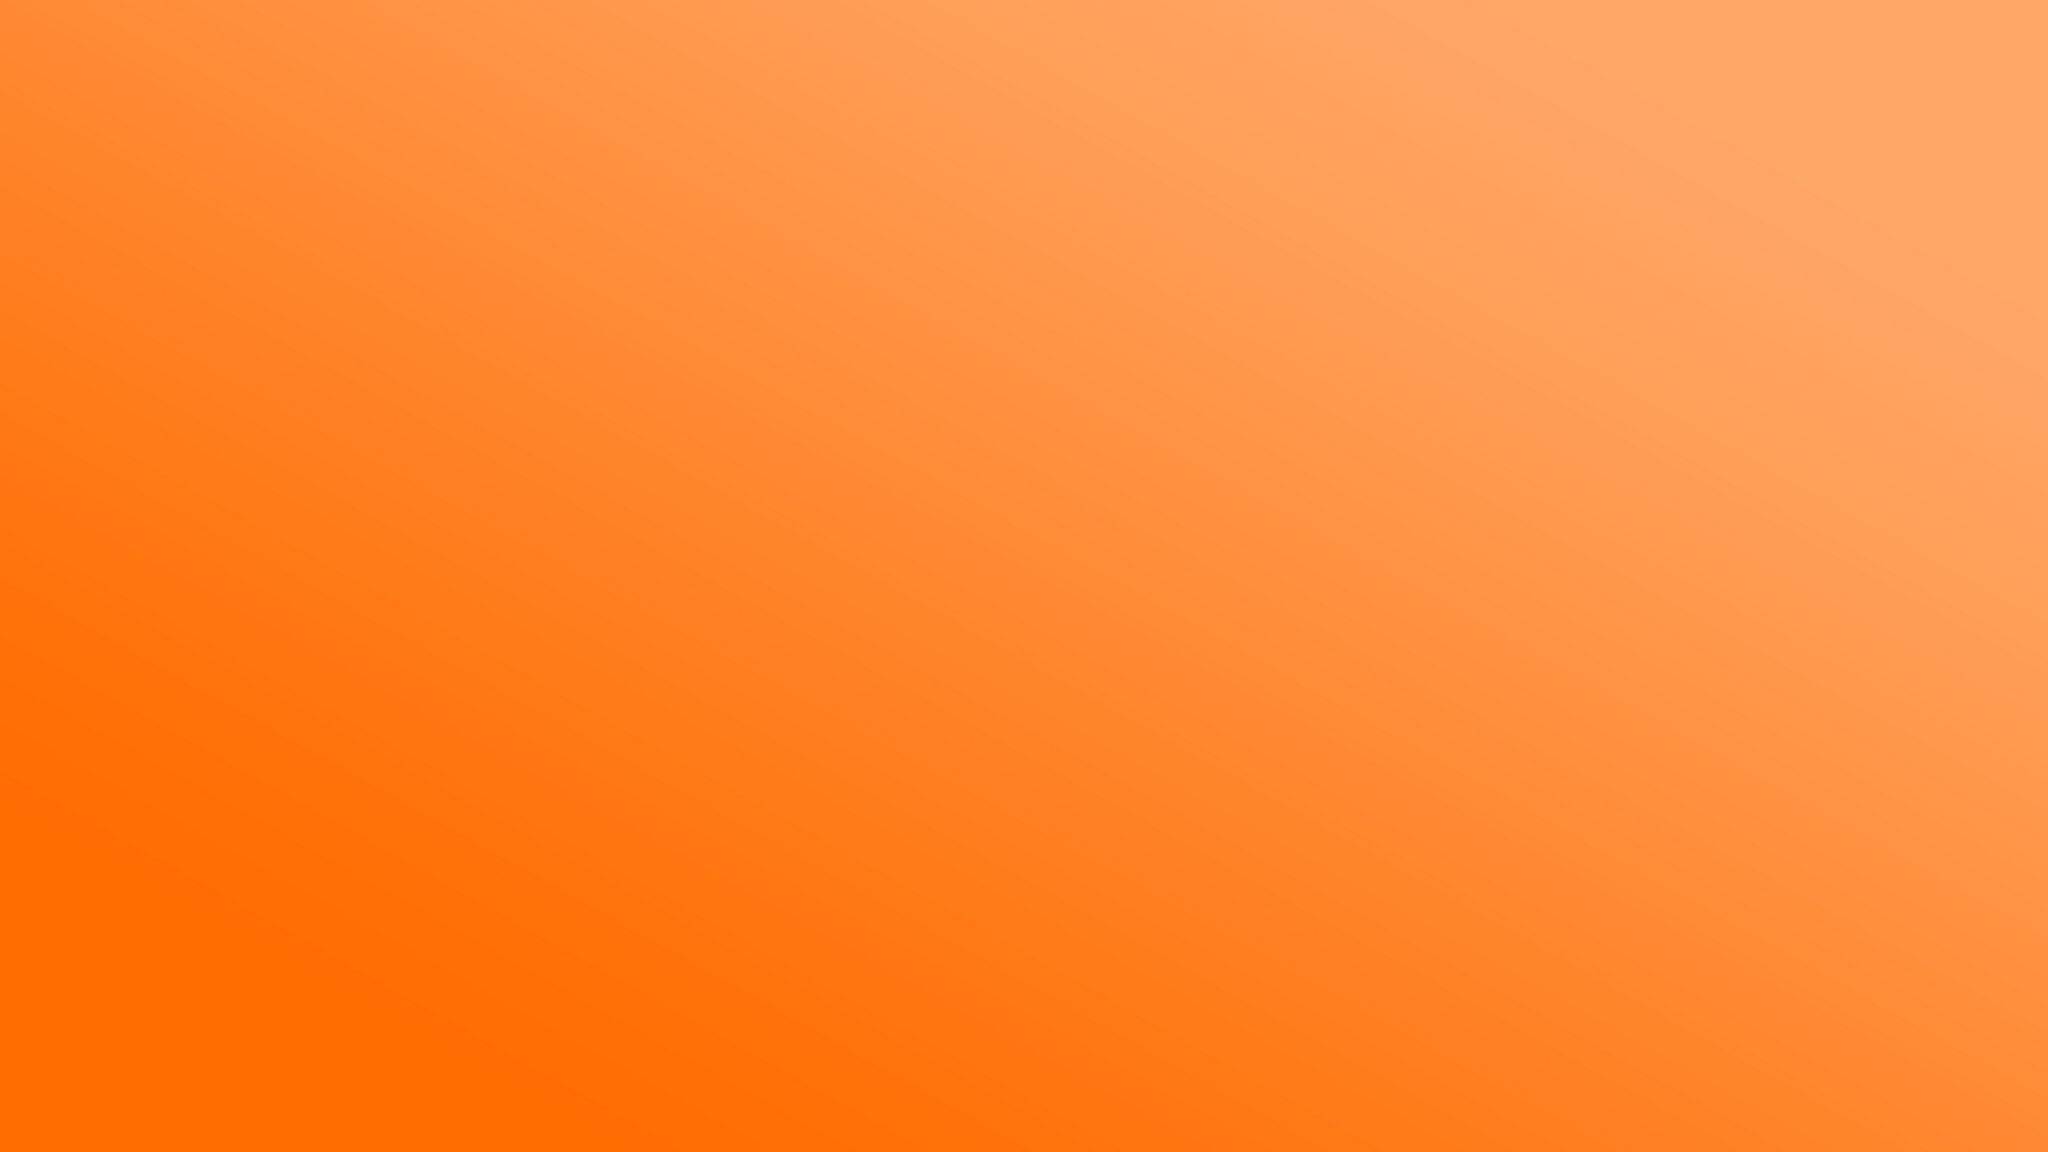 2048x1152 Orange And White Wallpaper - (62+) Group Wallpapers